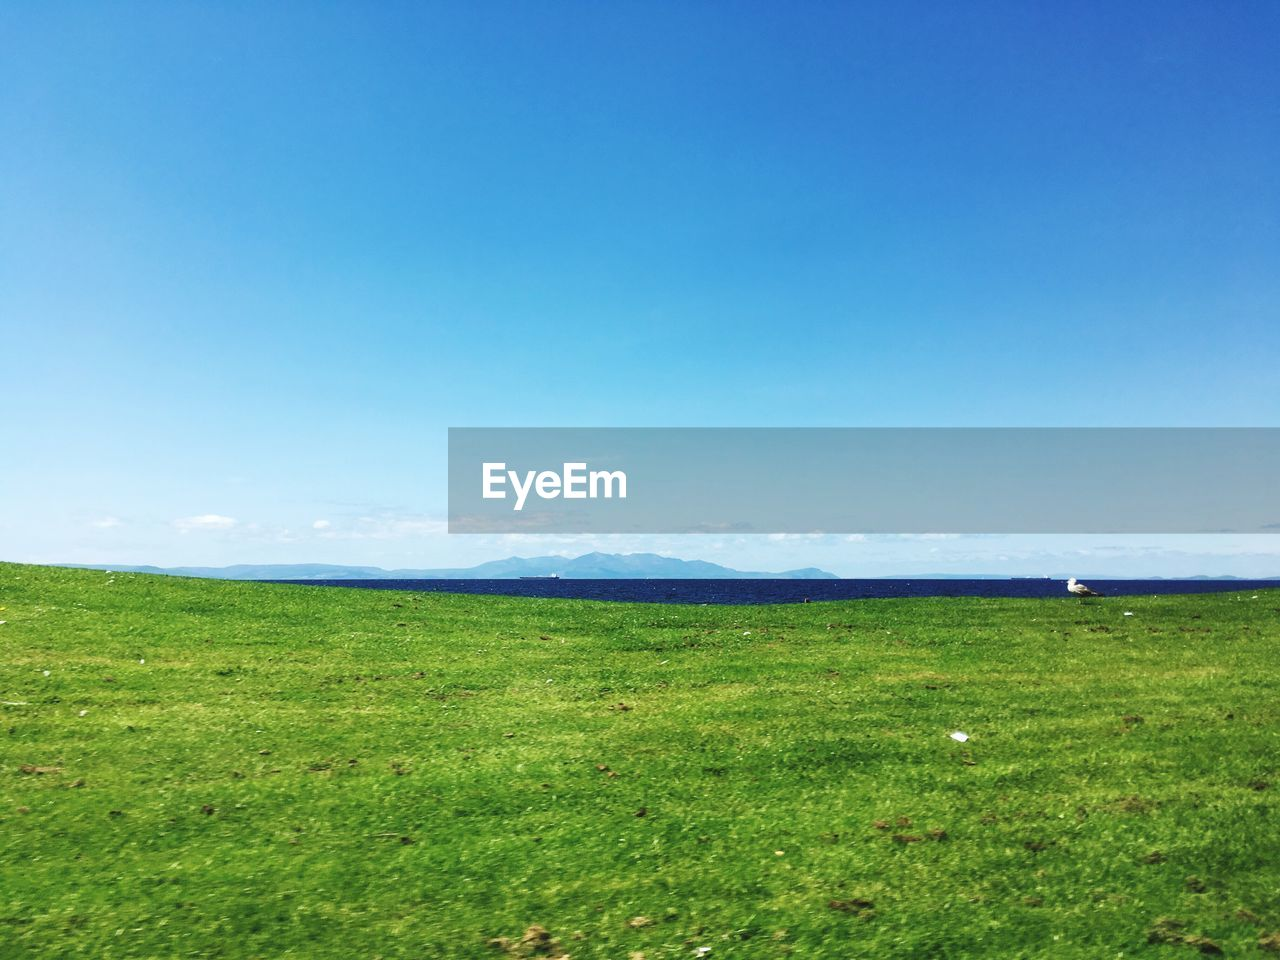 grass, field, landscape, nature, tranquility, tranquil scene, scenics, green color, beauty in nature, outdoors, no people, day, horizon over land, blue, sky, growth, clear sky, animal themes, golf course